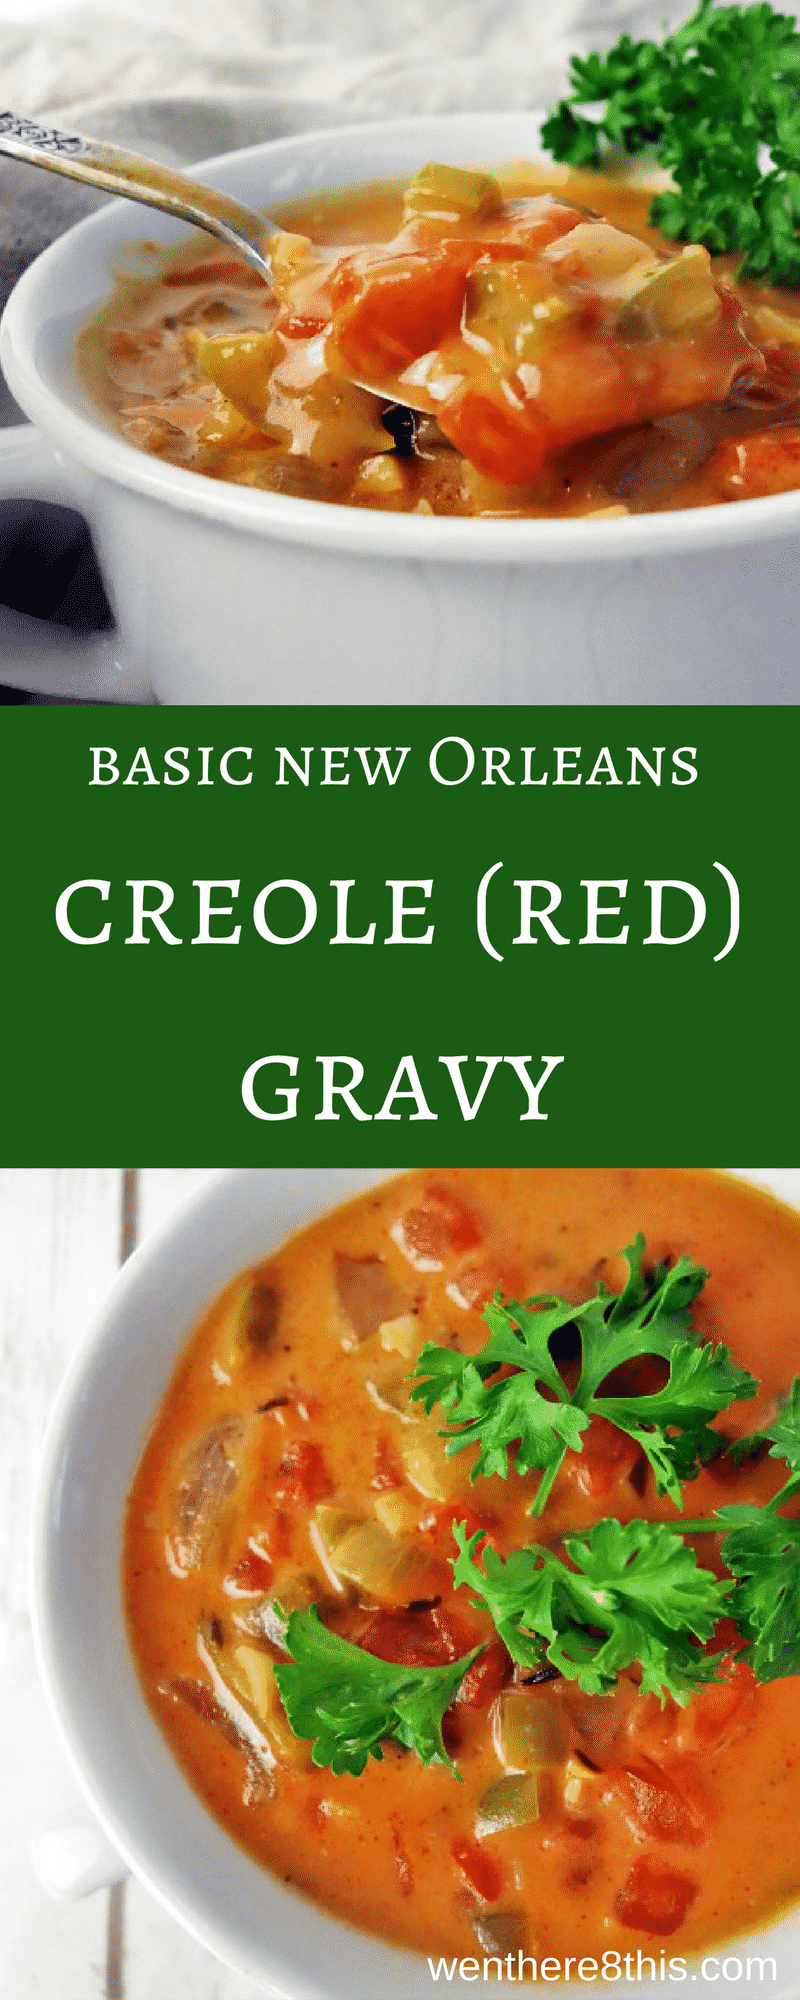 Learn how to make this basic New Orleans Creole (Red) Gravy with spicy Cajun seasoning, garlic, butter and cream. Super easy to make in less than 30 minutes. louisiana red gravy, red gravy recipe, spicy Louisiana gravy easy, Cajun red gravy recipe, Cajun red gravy easy, creole gravy recipe, Cajun recipes, creole recipes, southern gravy recipe, southern gravy easy, new Orleans red gravy, red gravy recipe new Orleans easy